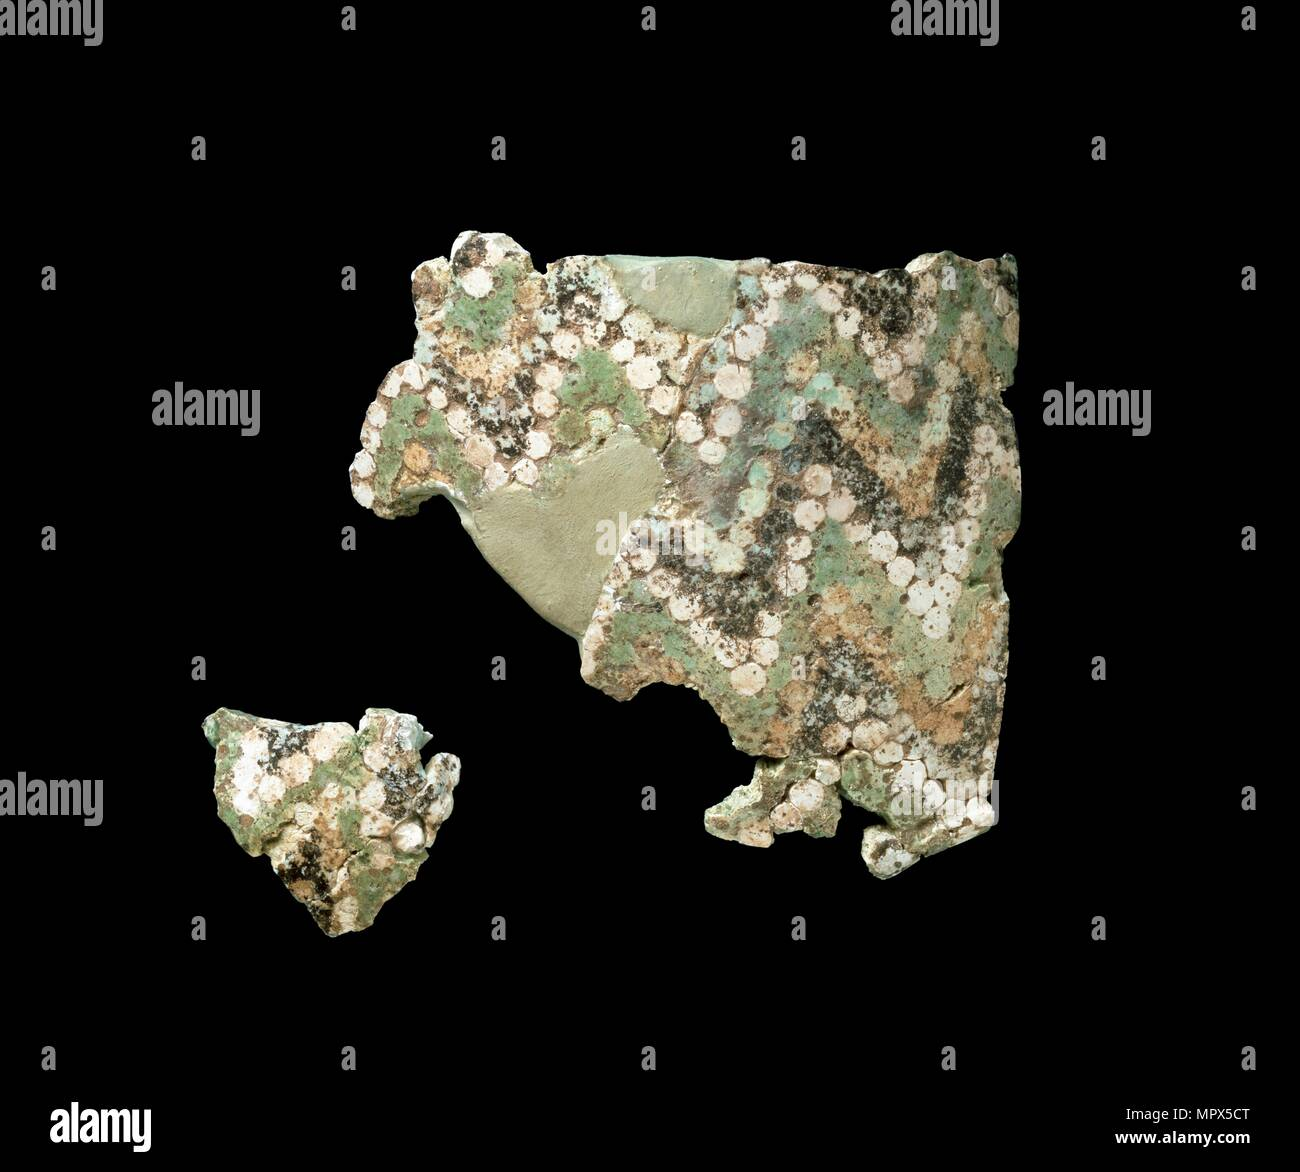 Two fragments of mosaic glass, yelllow, green, black & white, c1500-1300BC. Artist: Unknown. - Stock Image